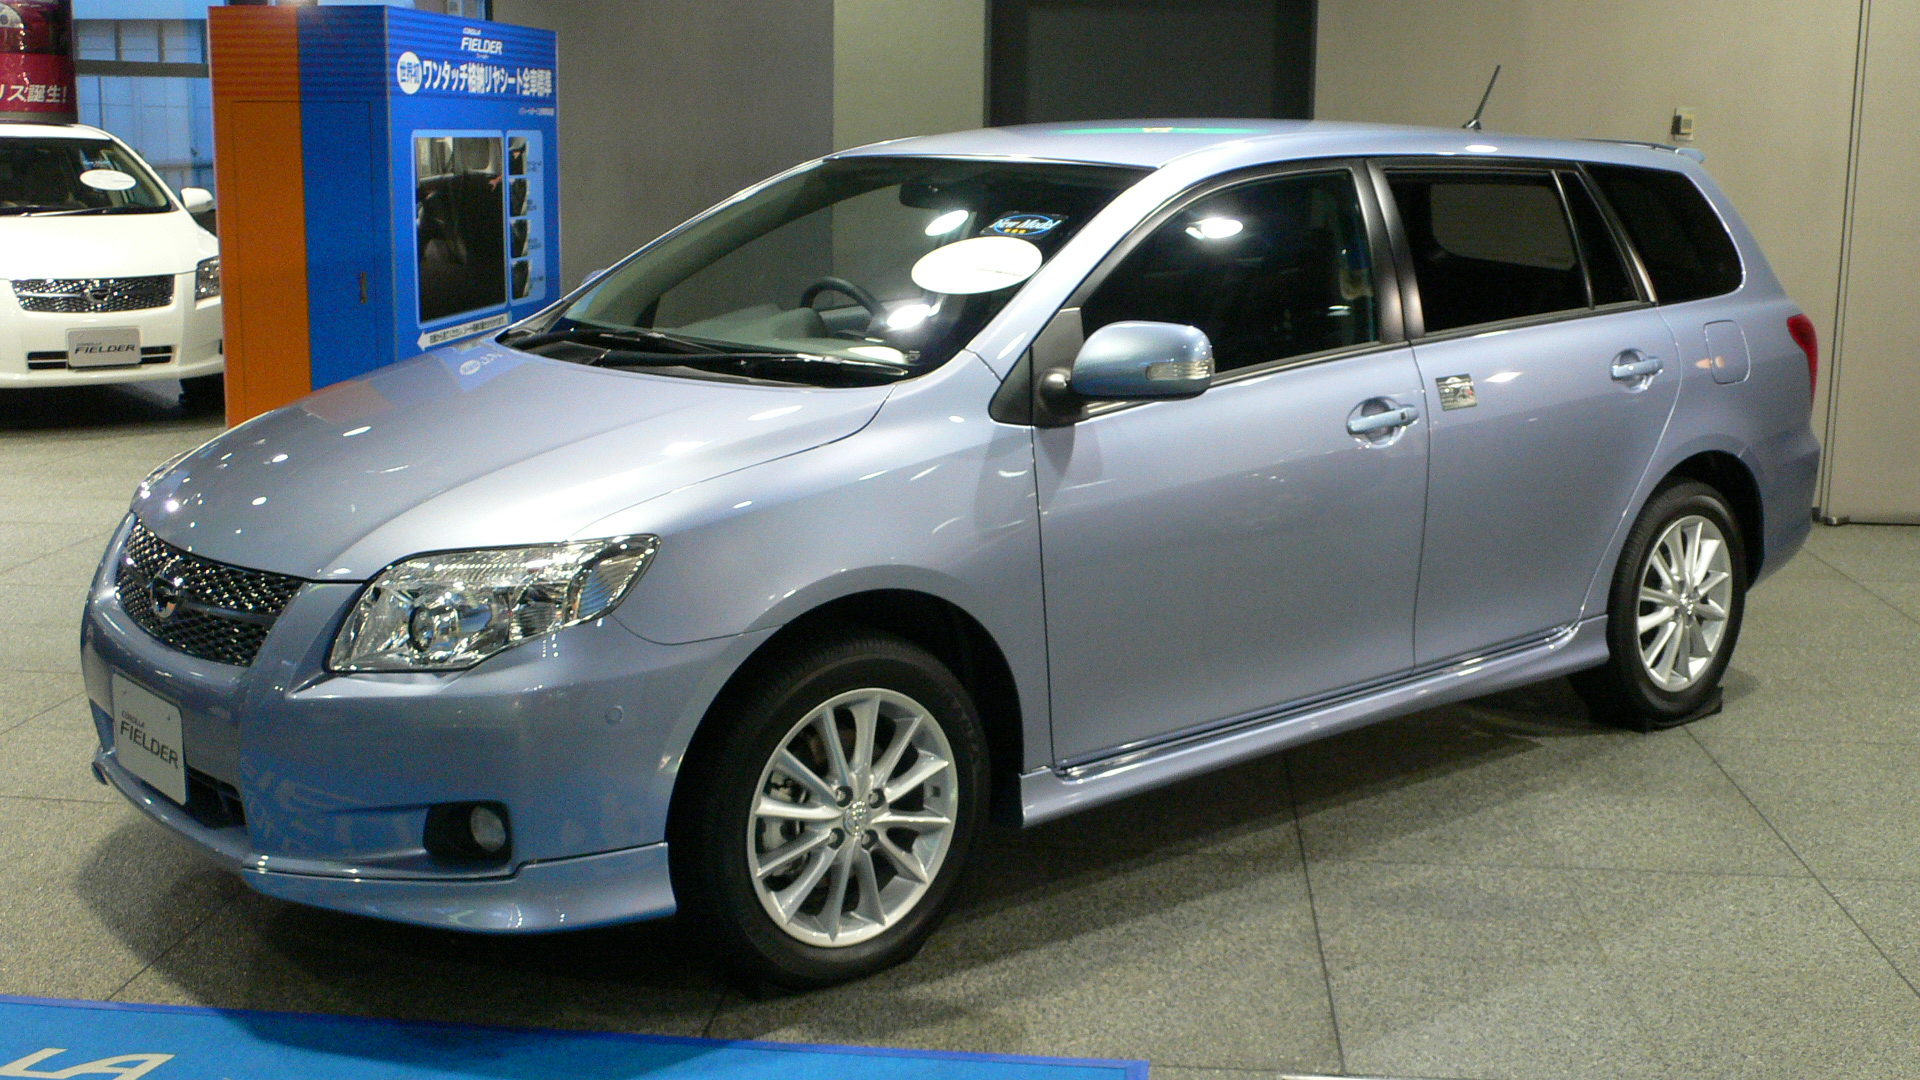 Toyota Corolla Fielder 2012 Exterior Side View